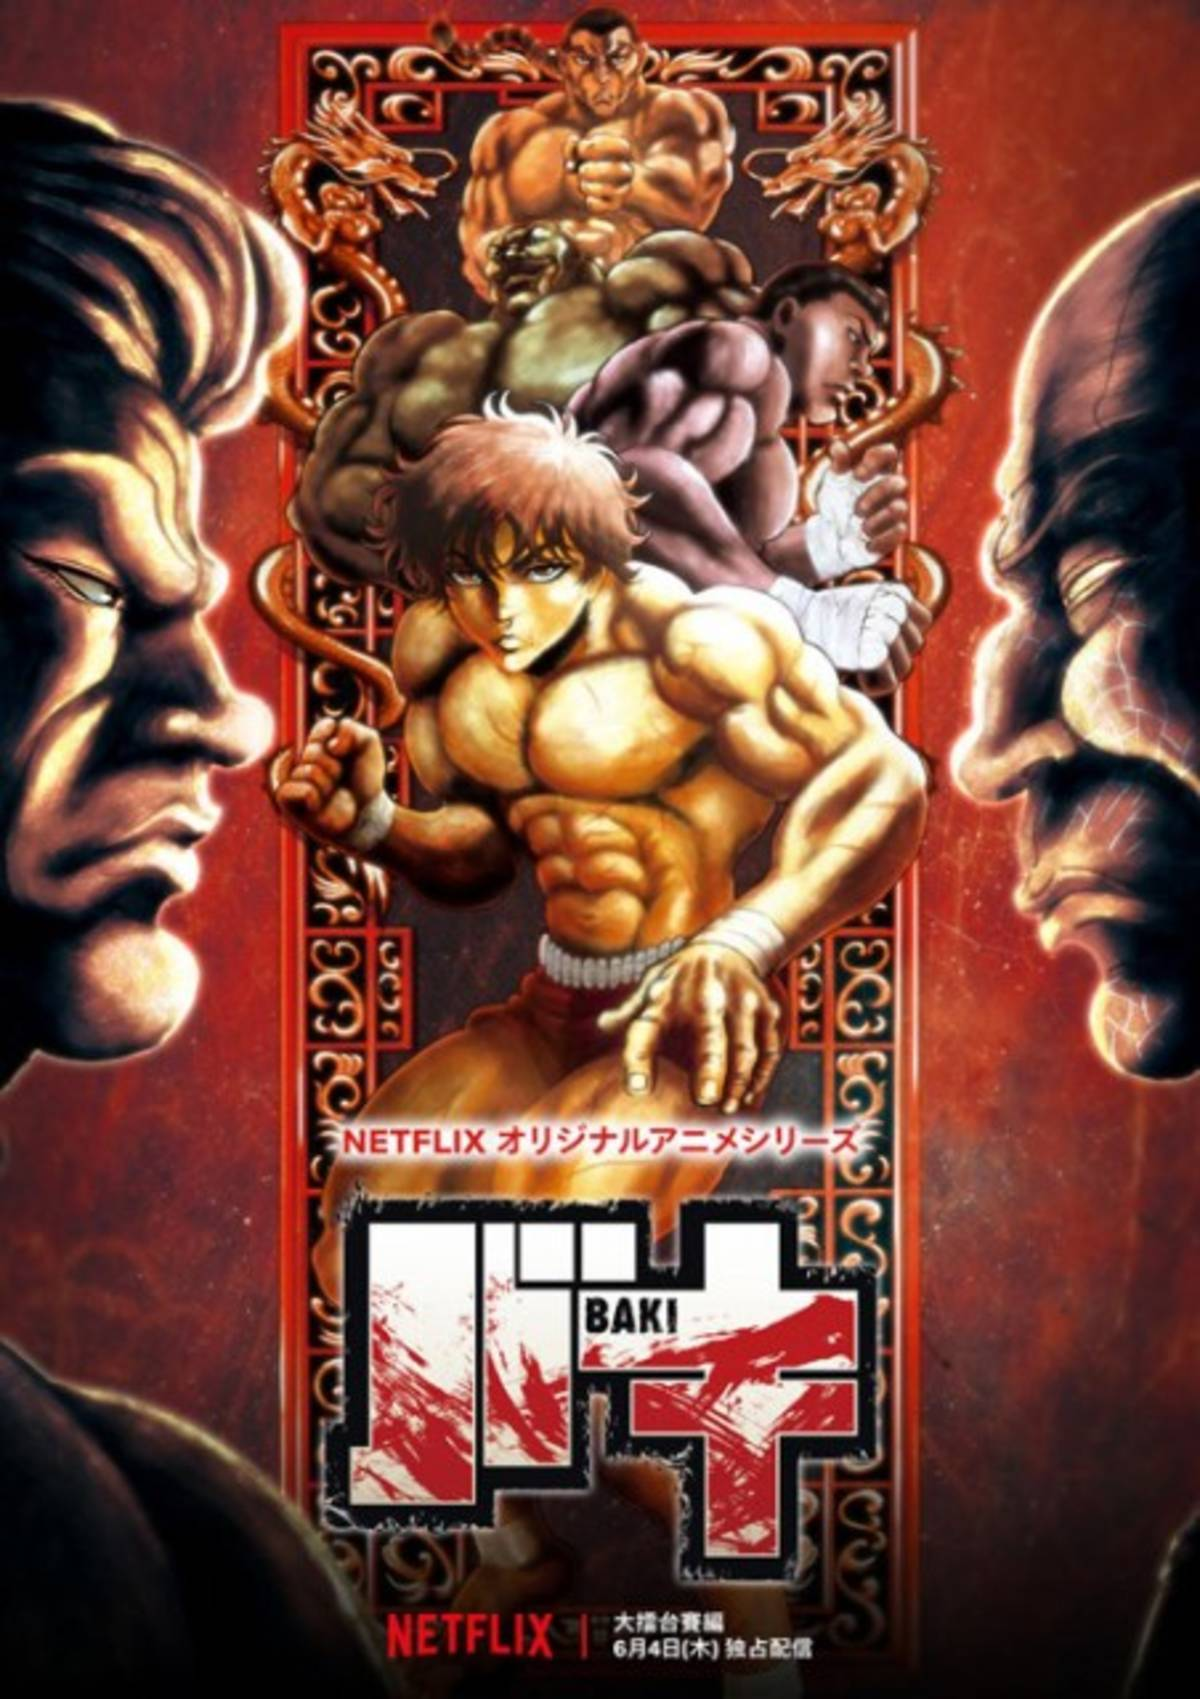 Baki anime sæson 2 trailer